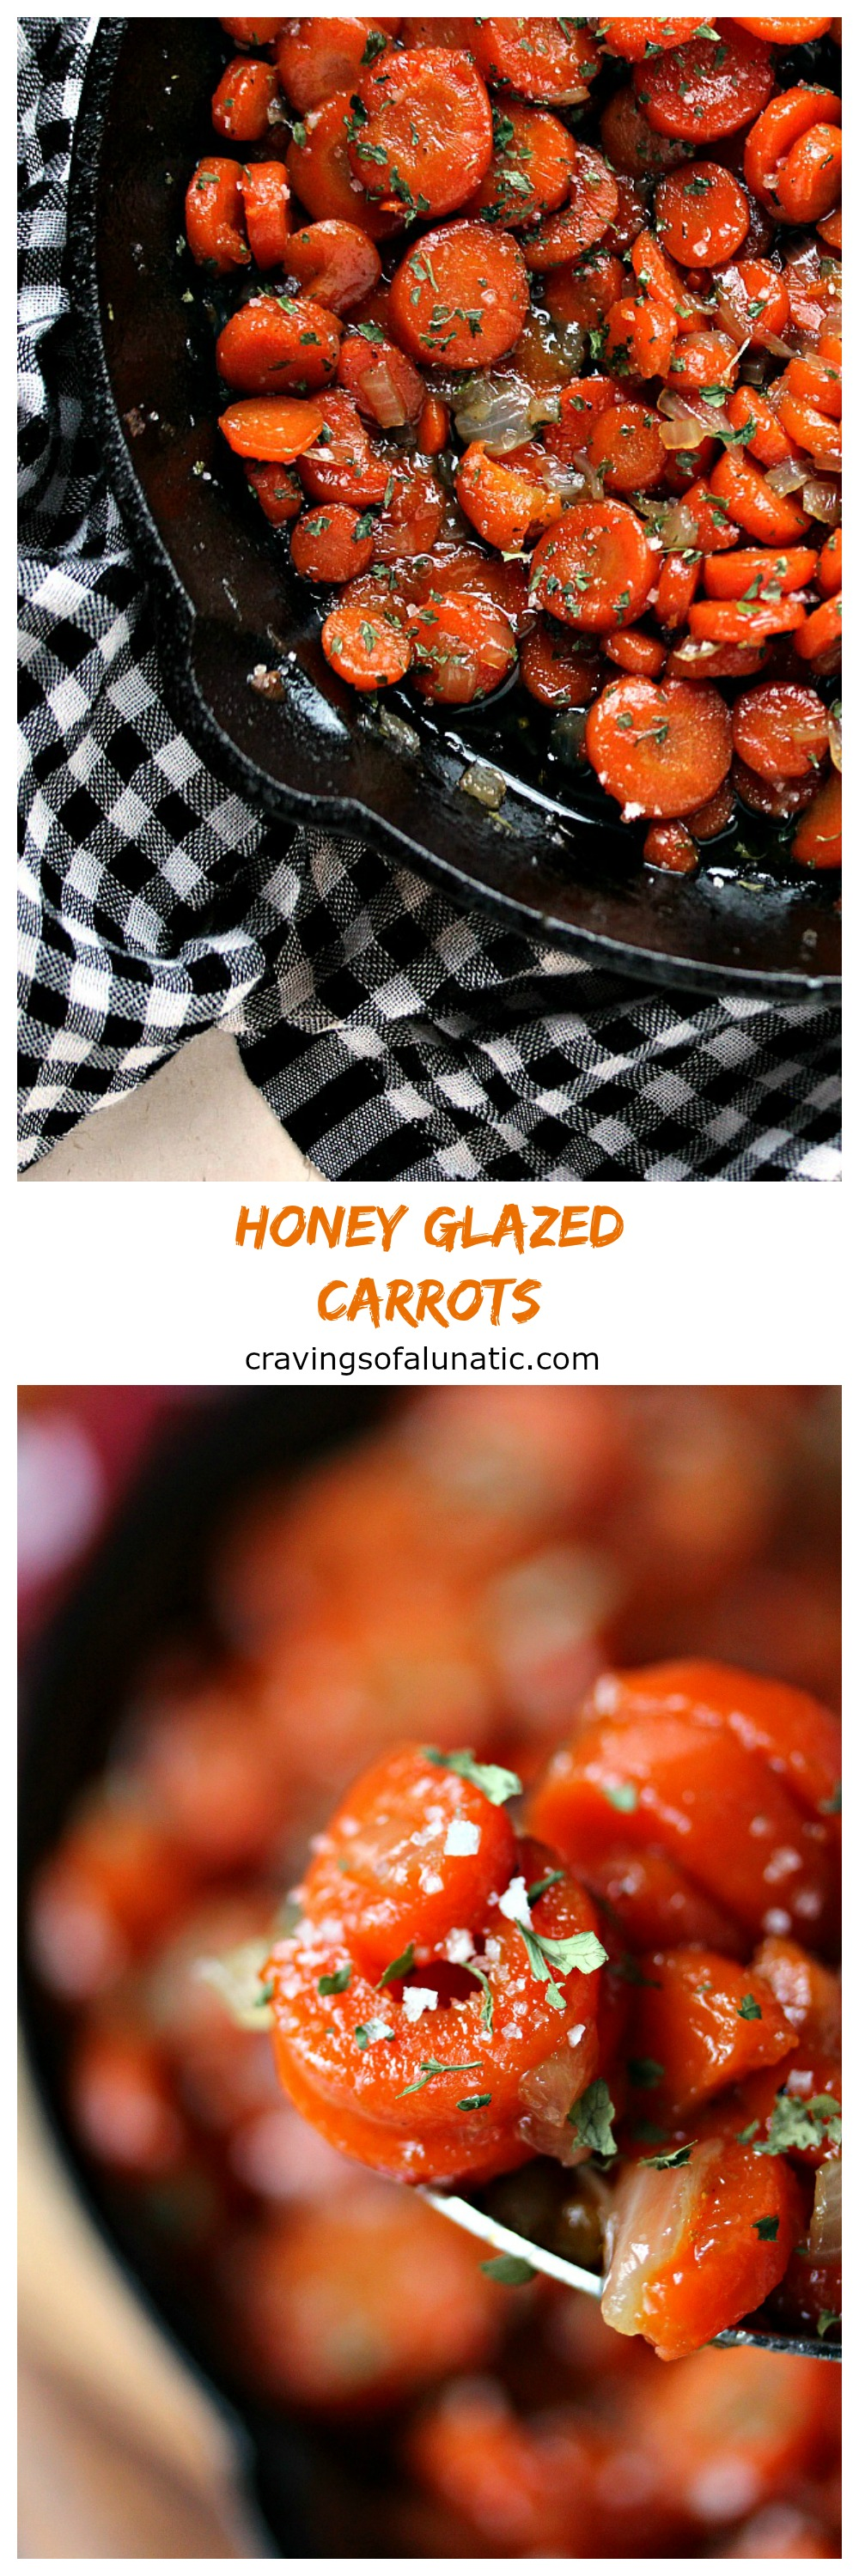 Honey Glazed Carrots from cravingsofalunatic.com- Sliced Carrots cooked simply in a cast iron pan. The prep for this recipe takes just 10 minutes. Start on the stovetop, then finish in the oven for perfectly cooked honey glazed carrots. (@CravingsLunatic)